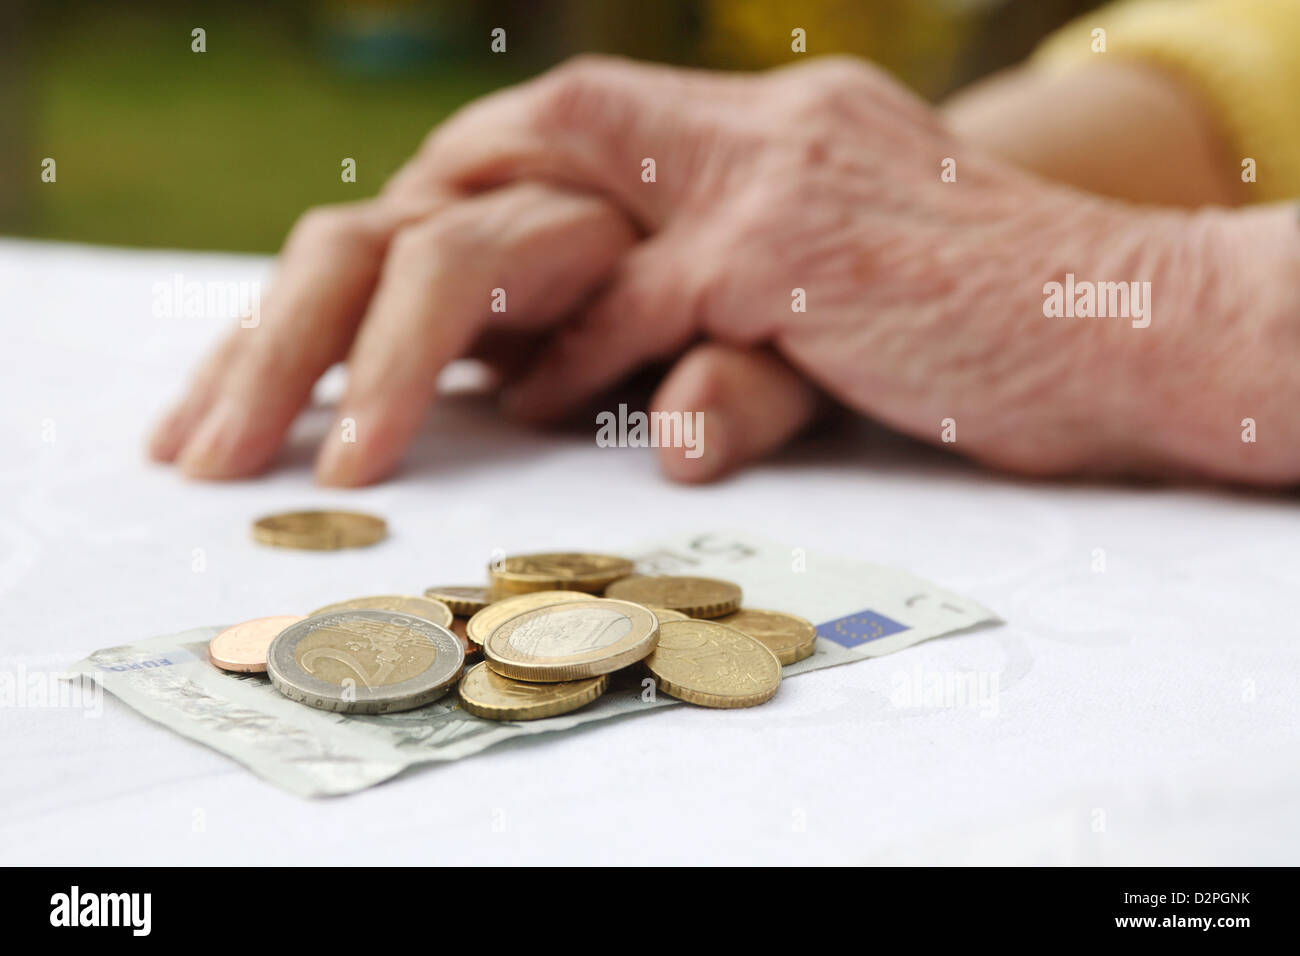 Berlin, Germany, in addition to the hands of a pensioner is money on the table - Stock Image